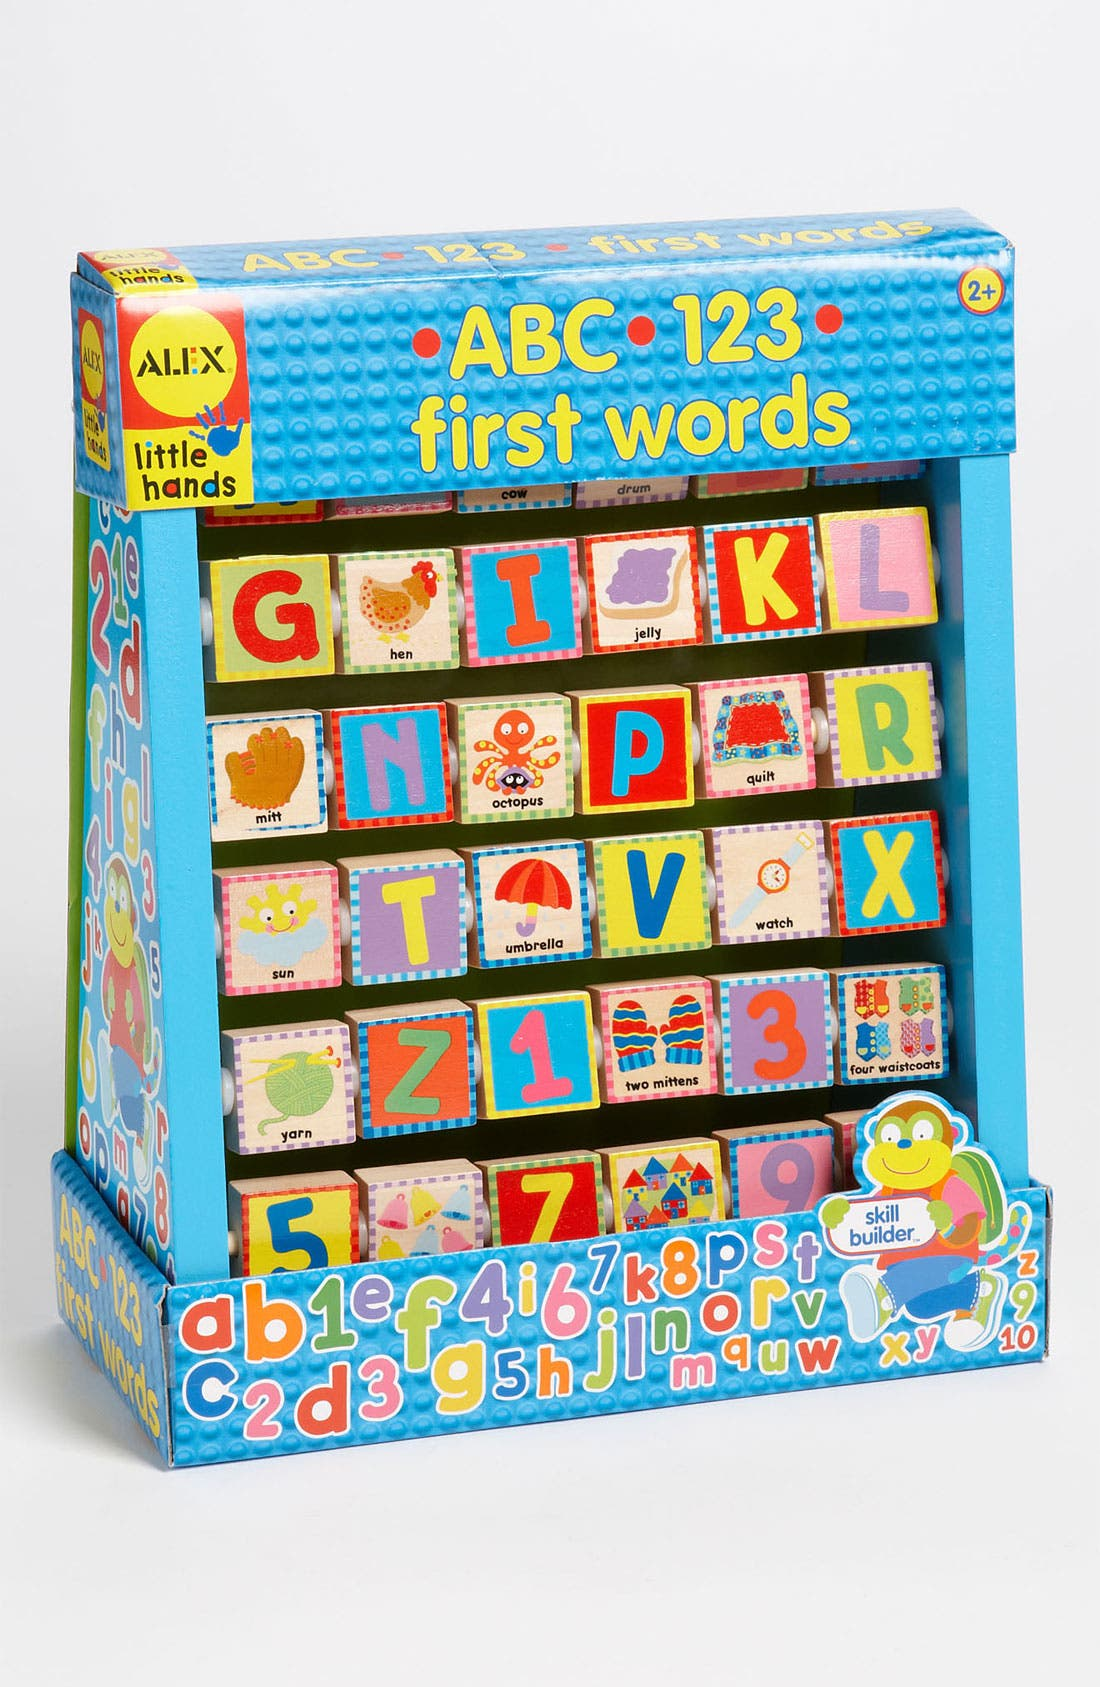 Alternate Image 1 Selected - Alex® Toys 'ABC 123 First Words' Toy